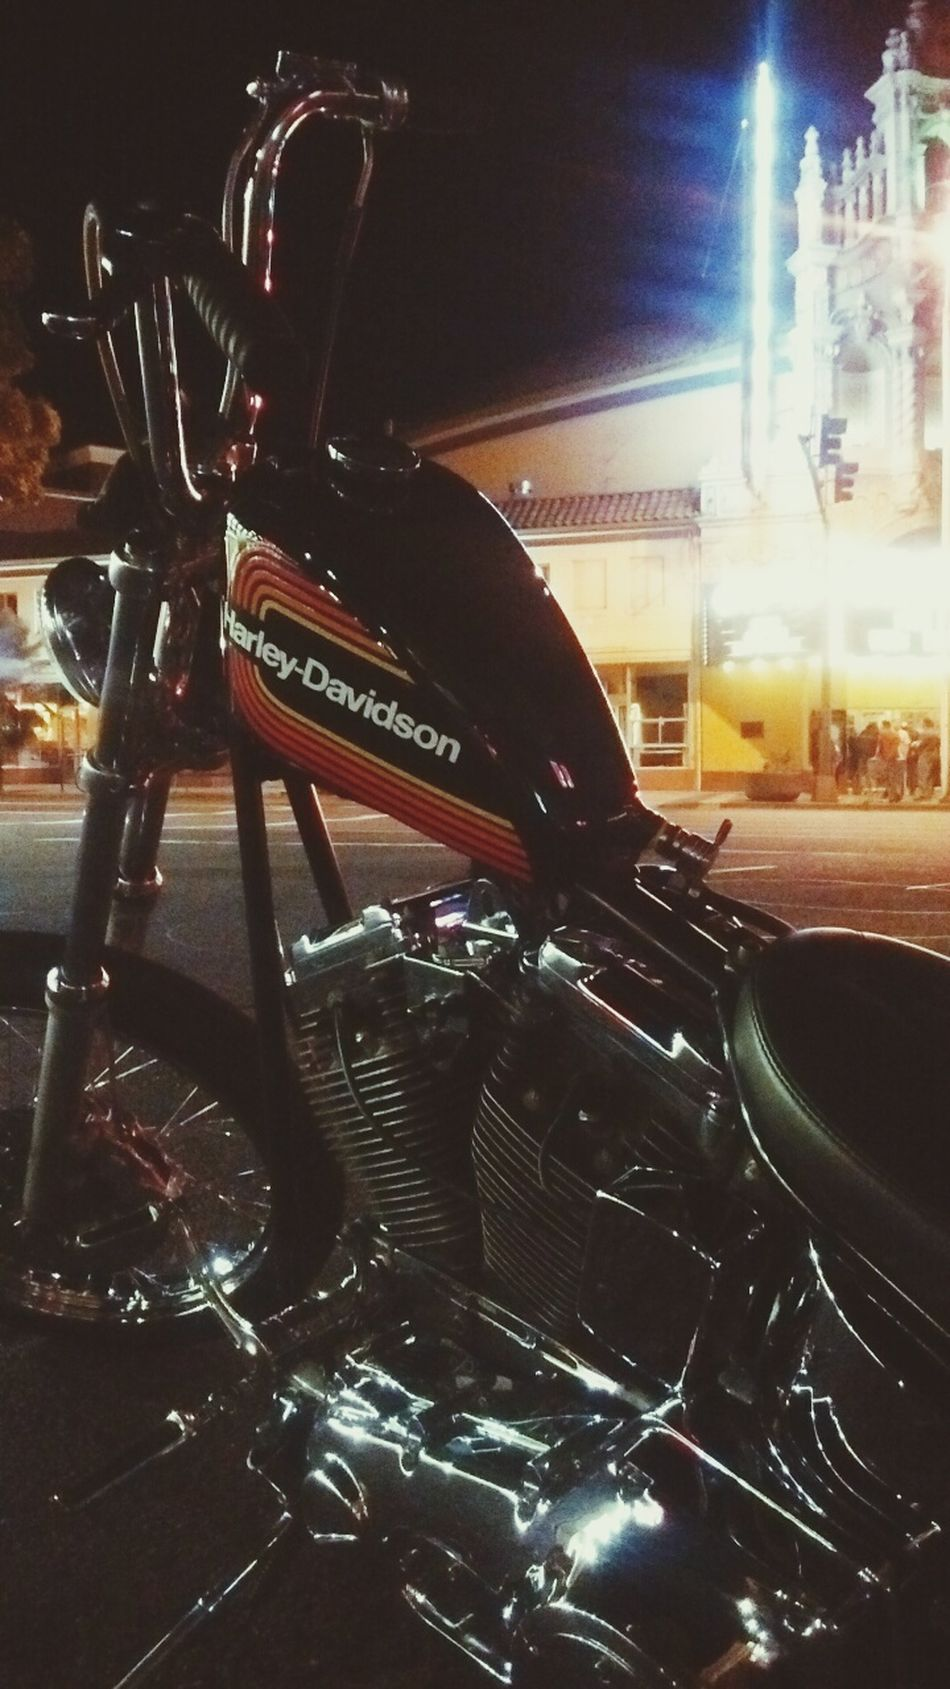 Harley Davidson Theater Arts Culture And Entertainment Urban Life, Life In Motion, Street Life, Architecture, Architecture Streetside City Life Street Photography Bobberlife